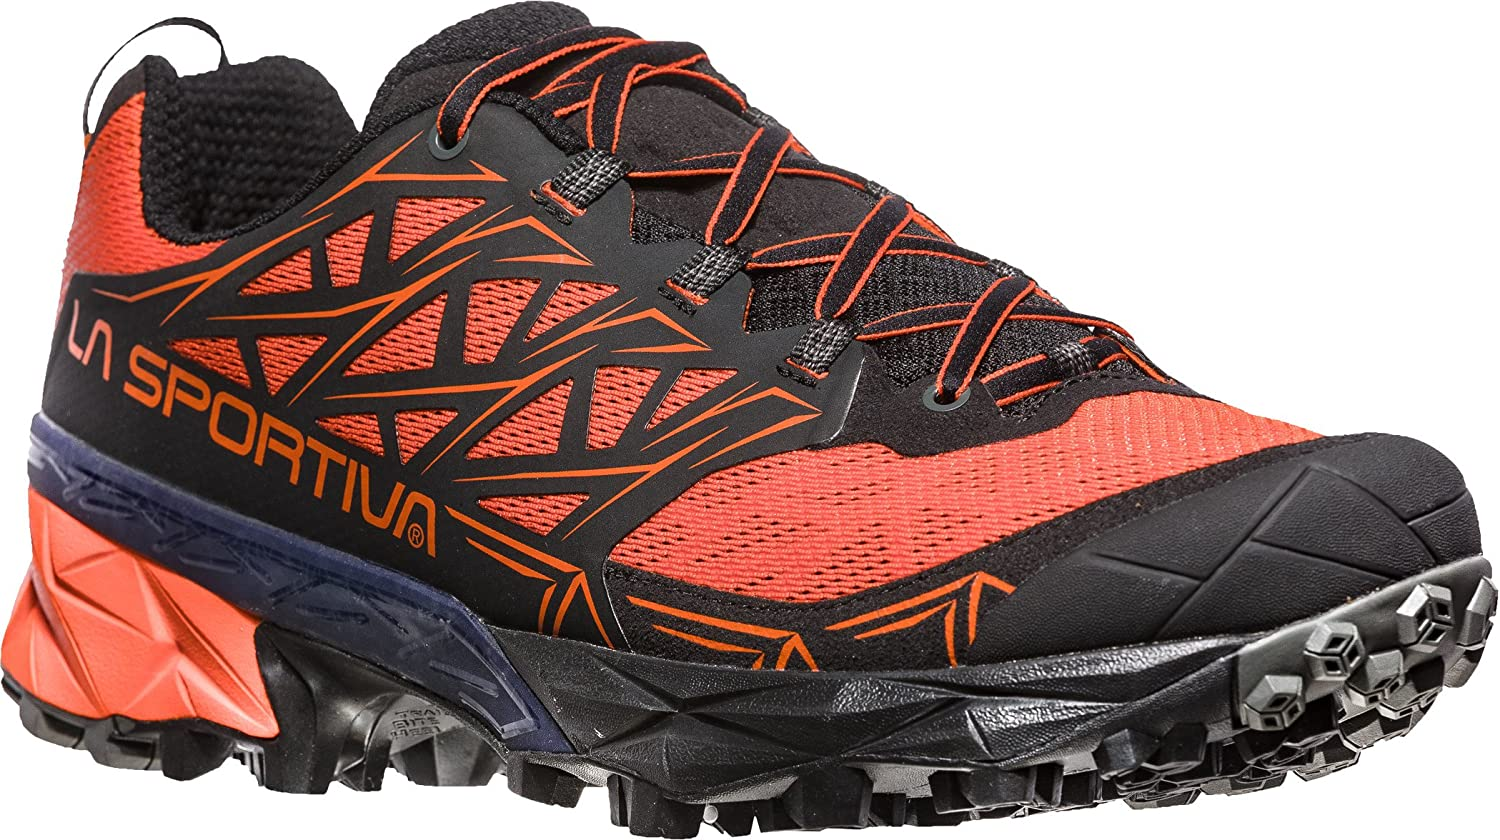 La Sportiva Men s Trail Running Shoes, Blue, 9.5